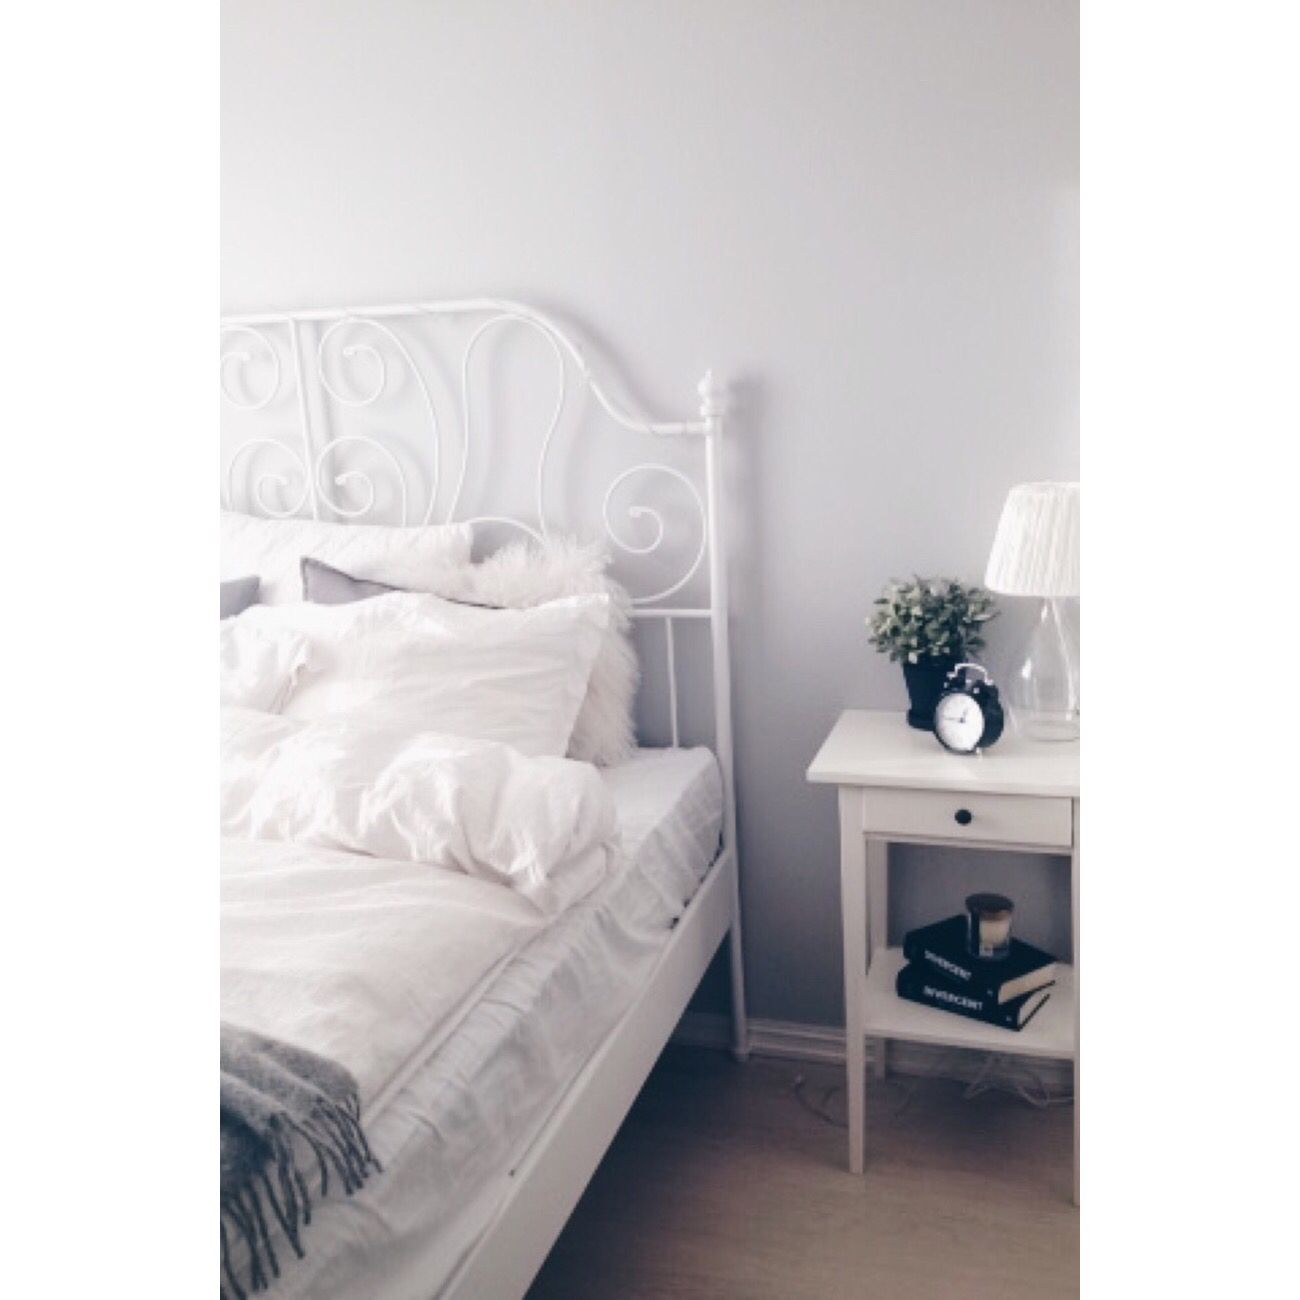 Room inspiration tumblr leirvik bed ikea kleidung pinterest - Tumblr zimmer ikea ...